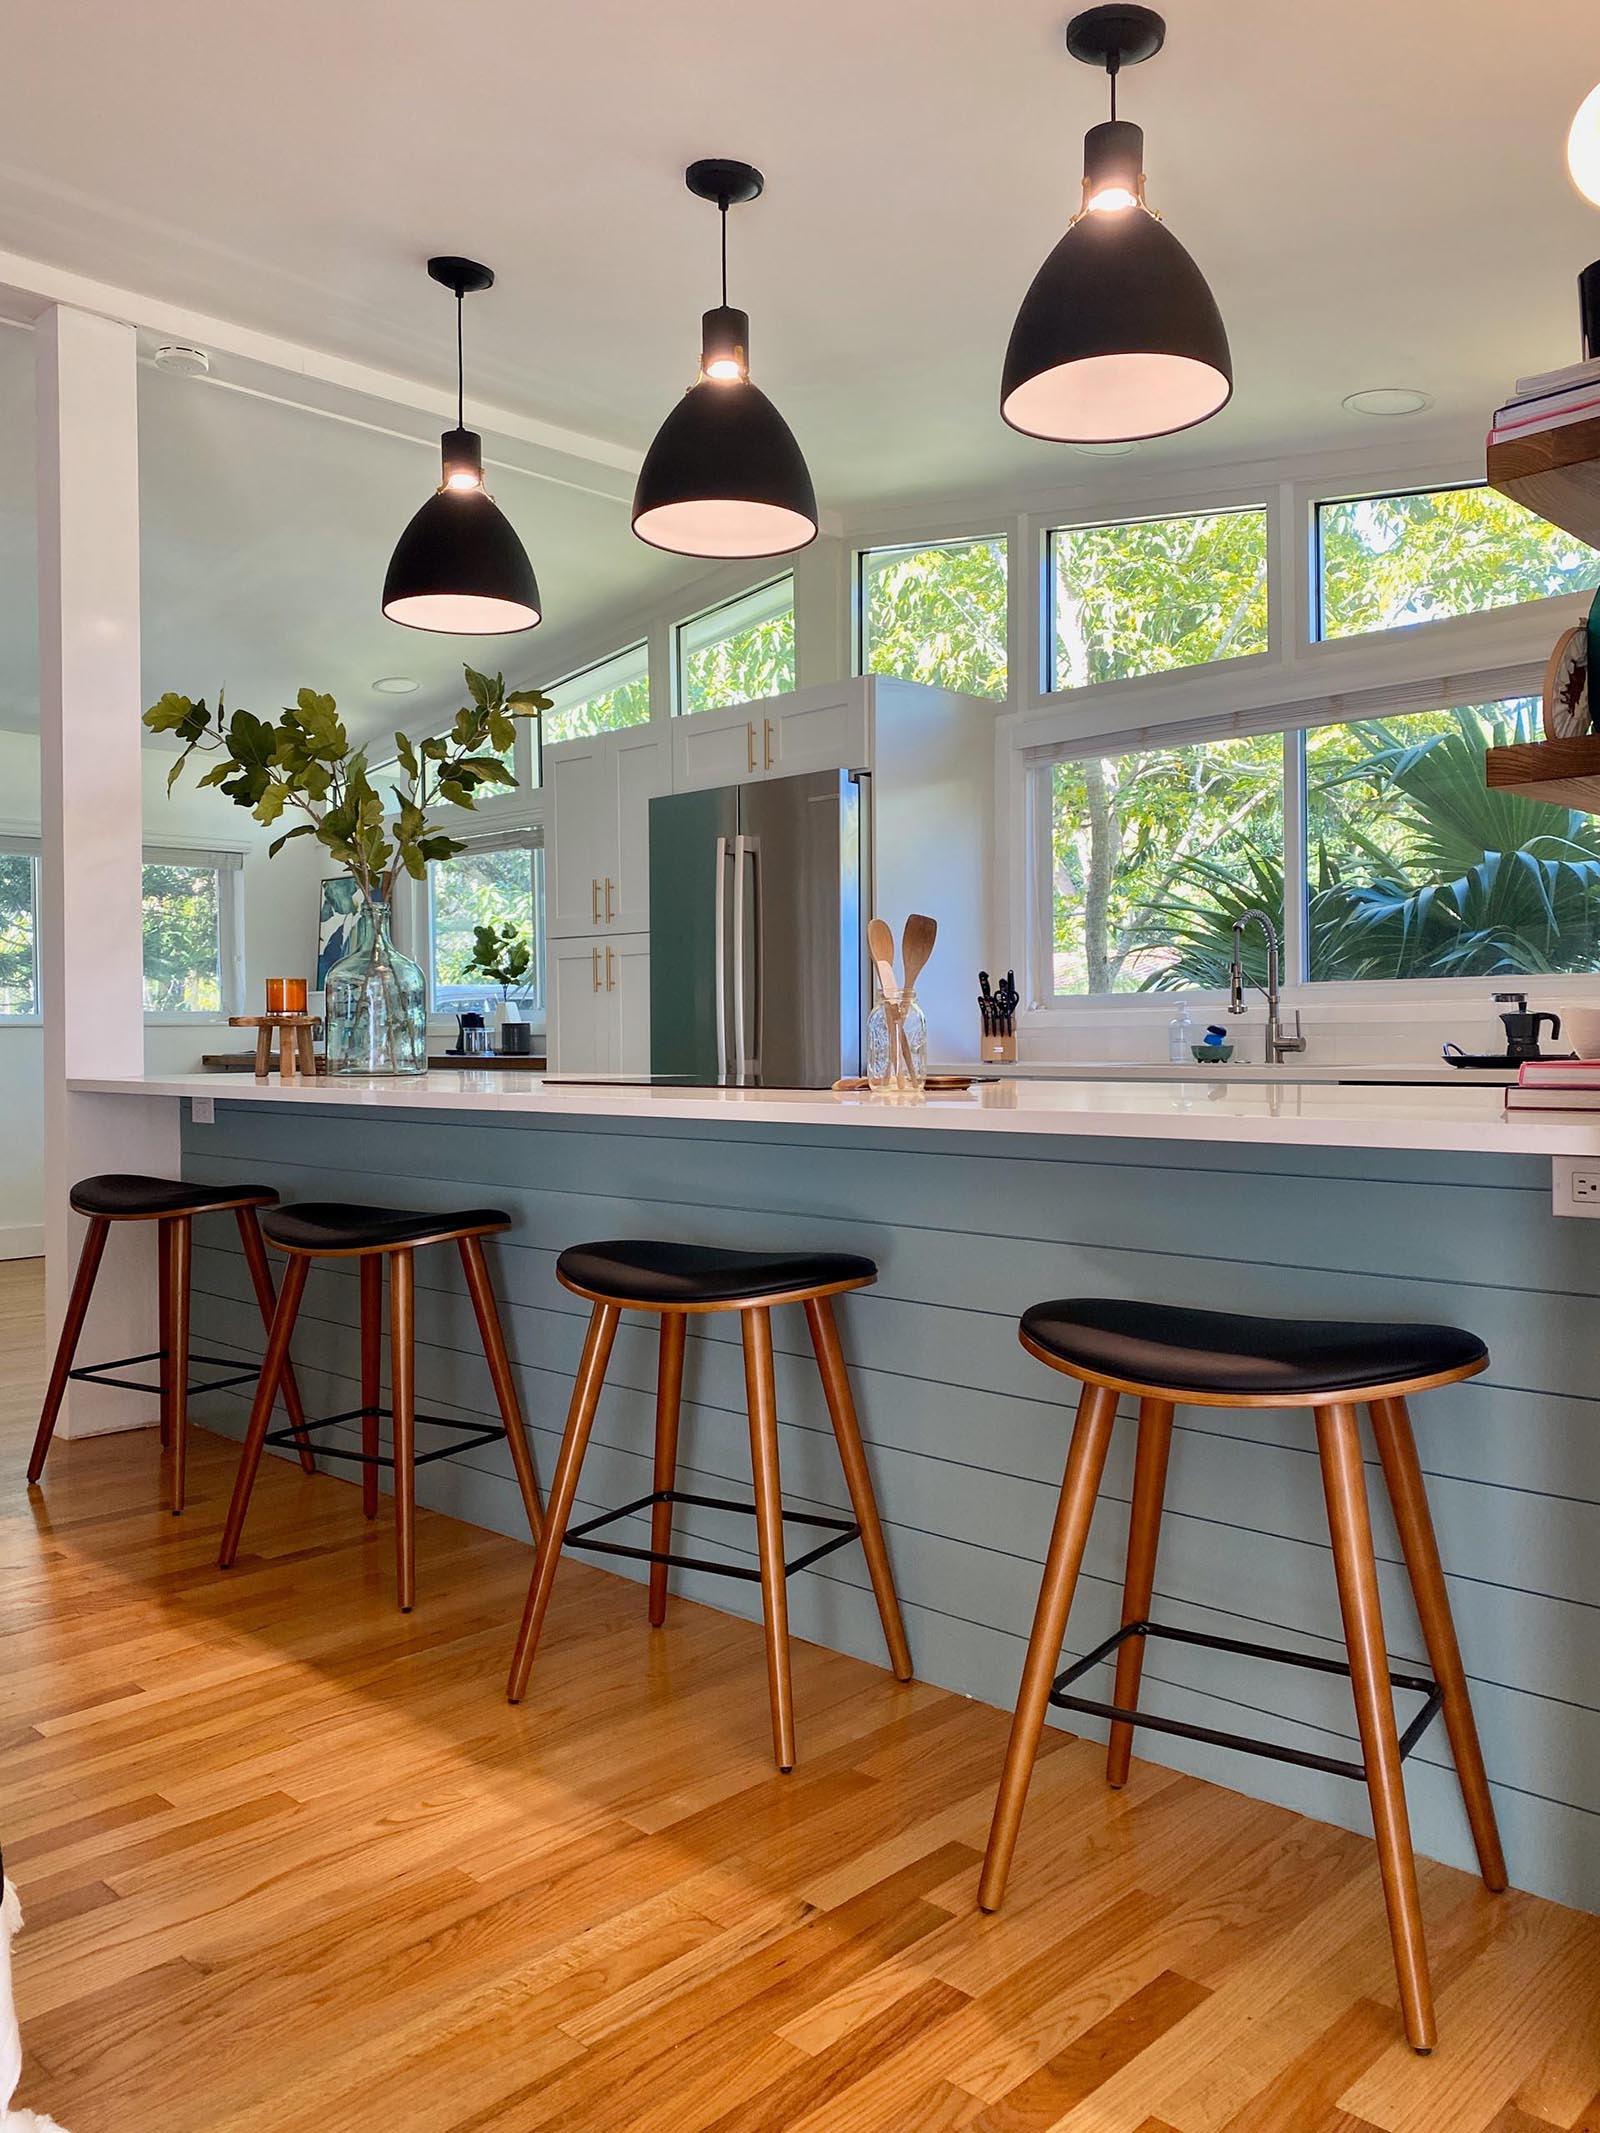 A modern and open kitchen with a peninsula, white cabinets, open wood shelving, and hexagonal floor tiles.